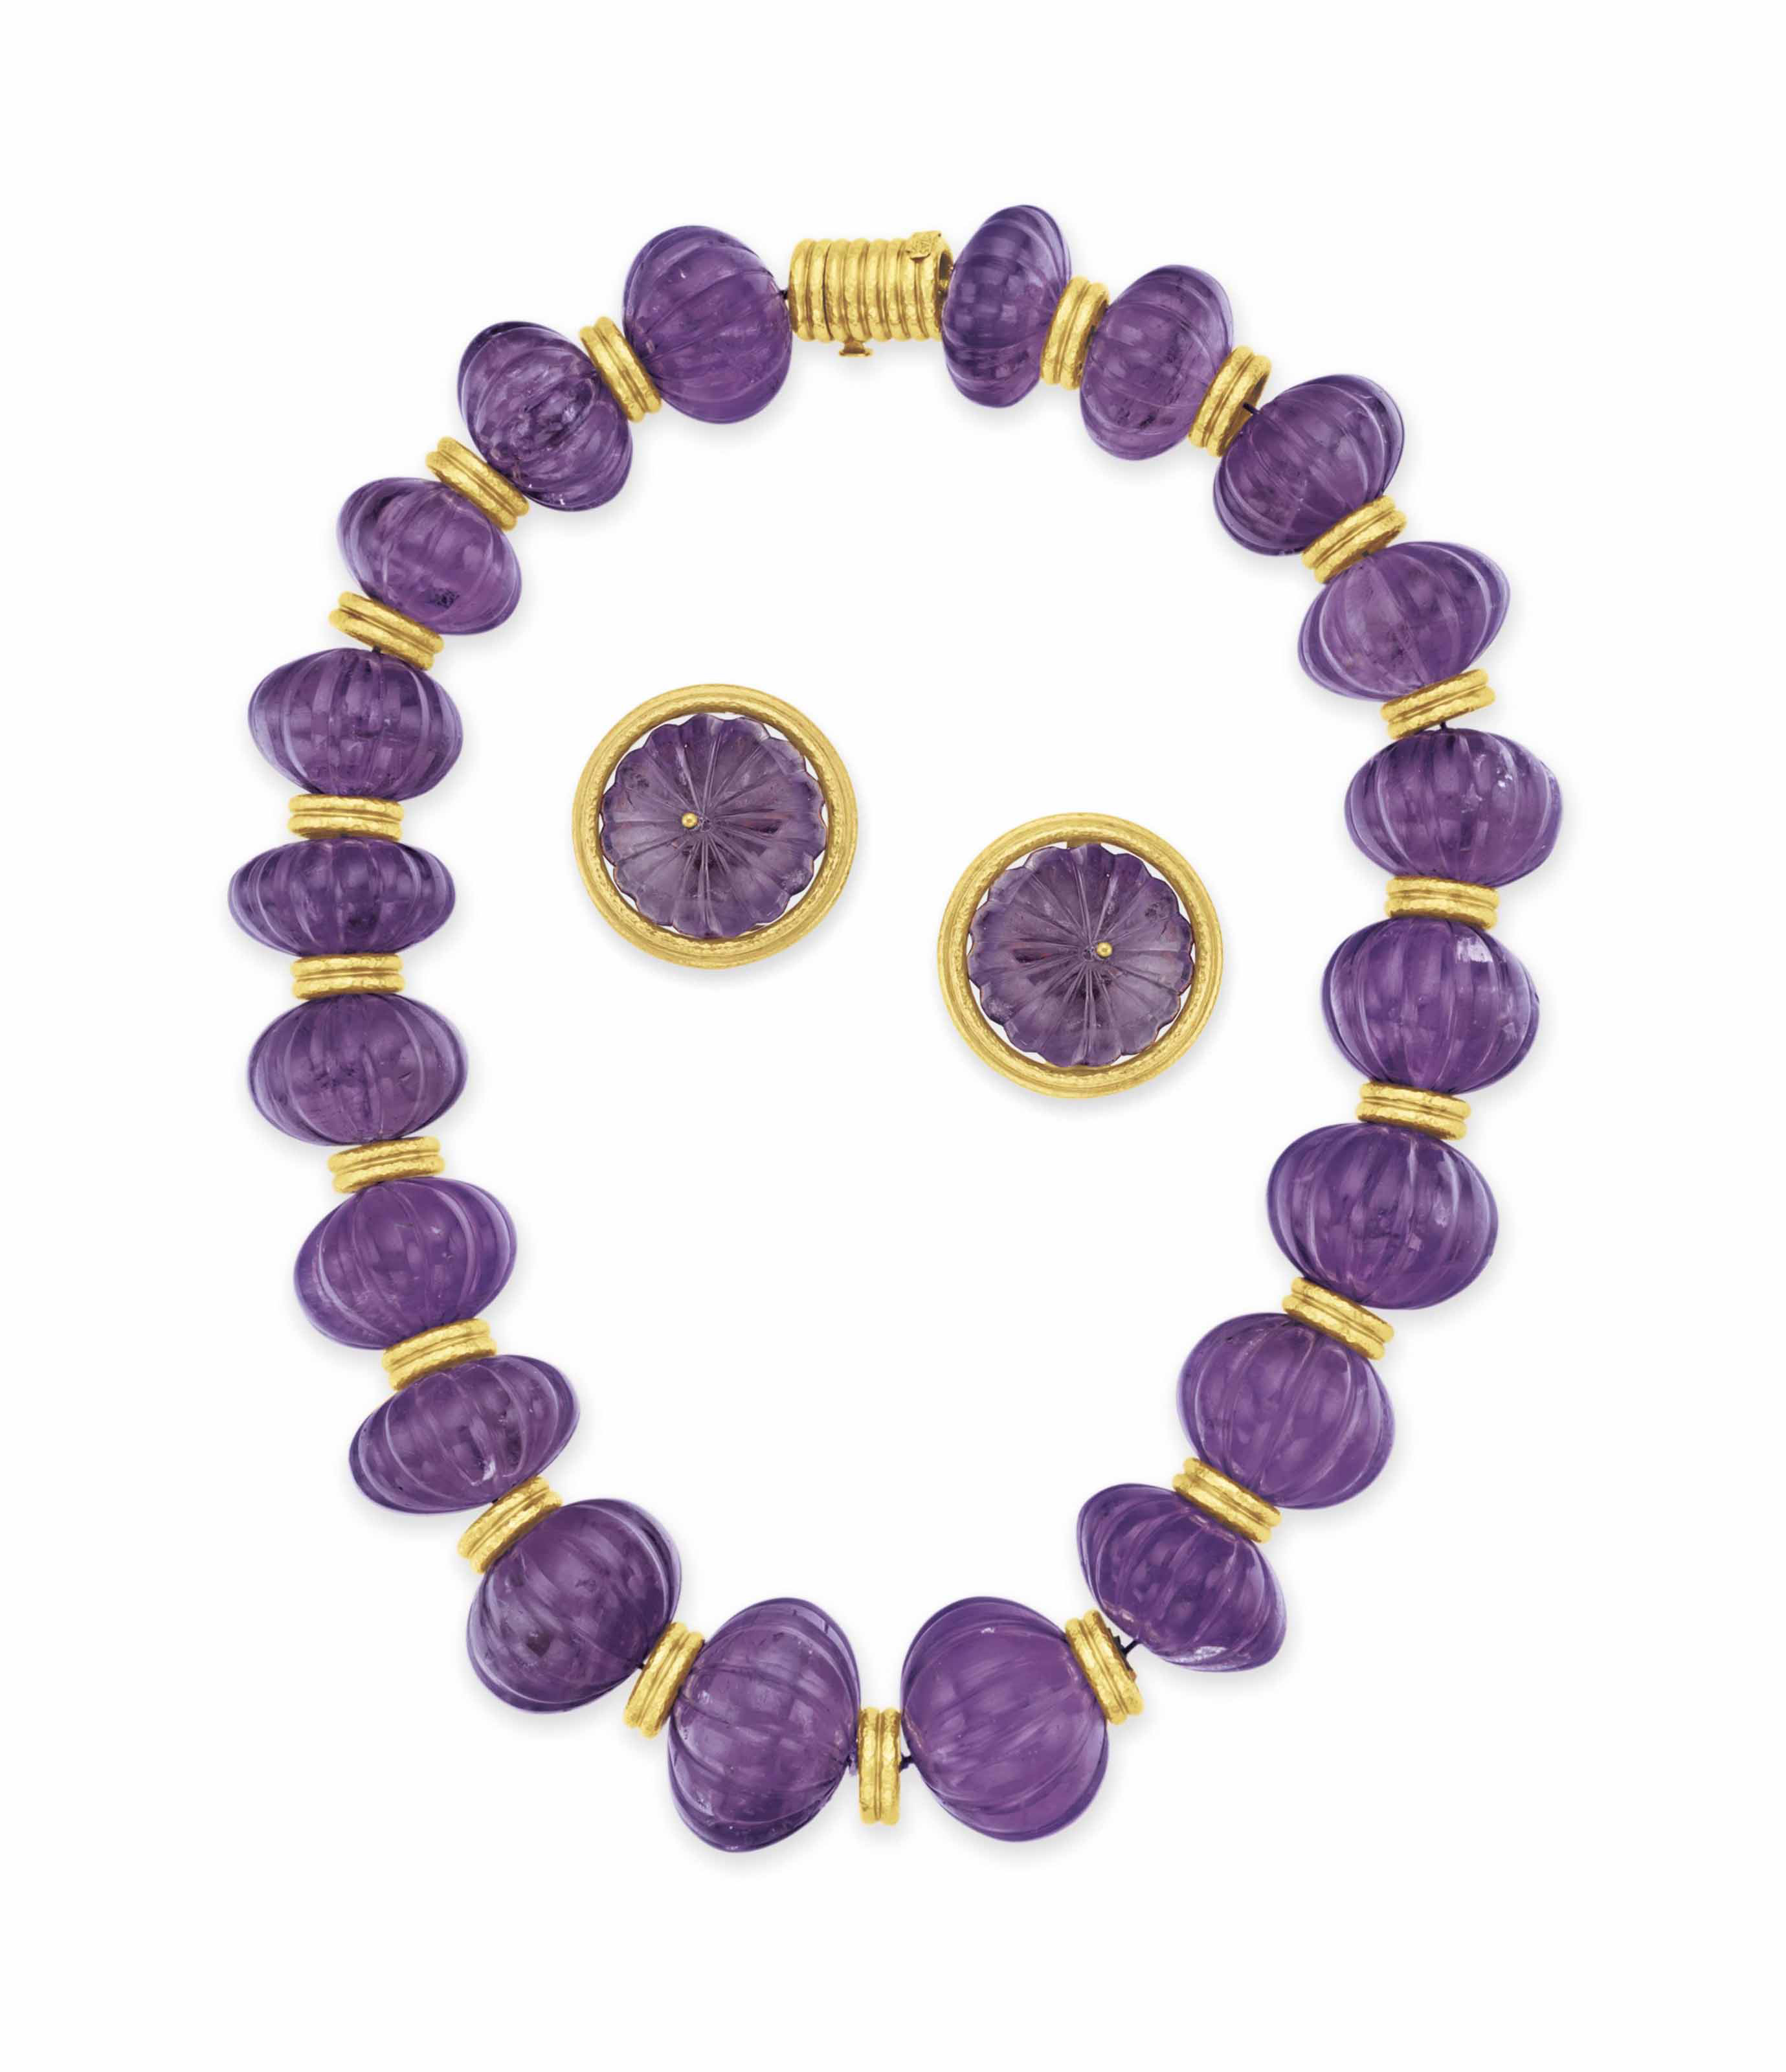 A SET OF AMETHYST AND GOLD JEWELRY, BY ZOLOTAS